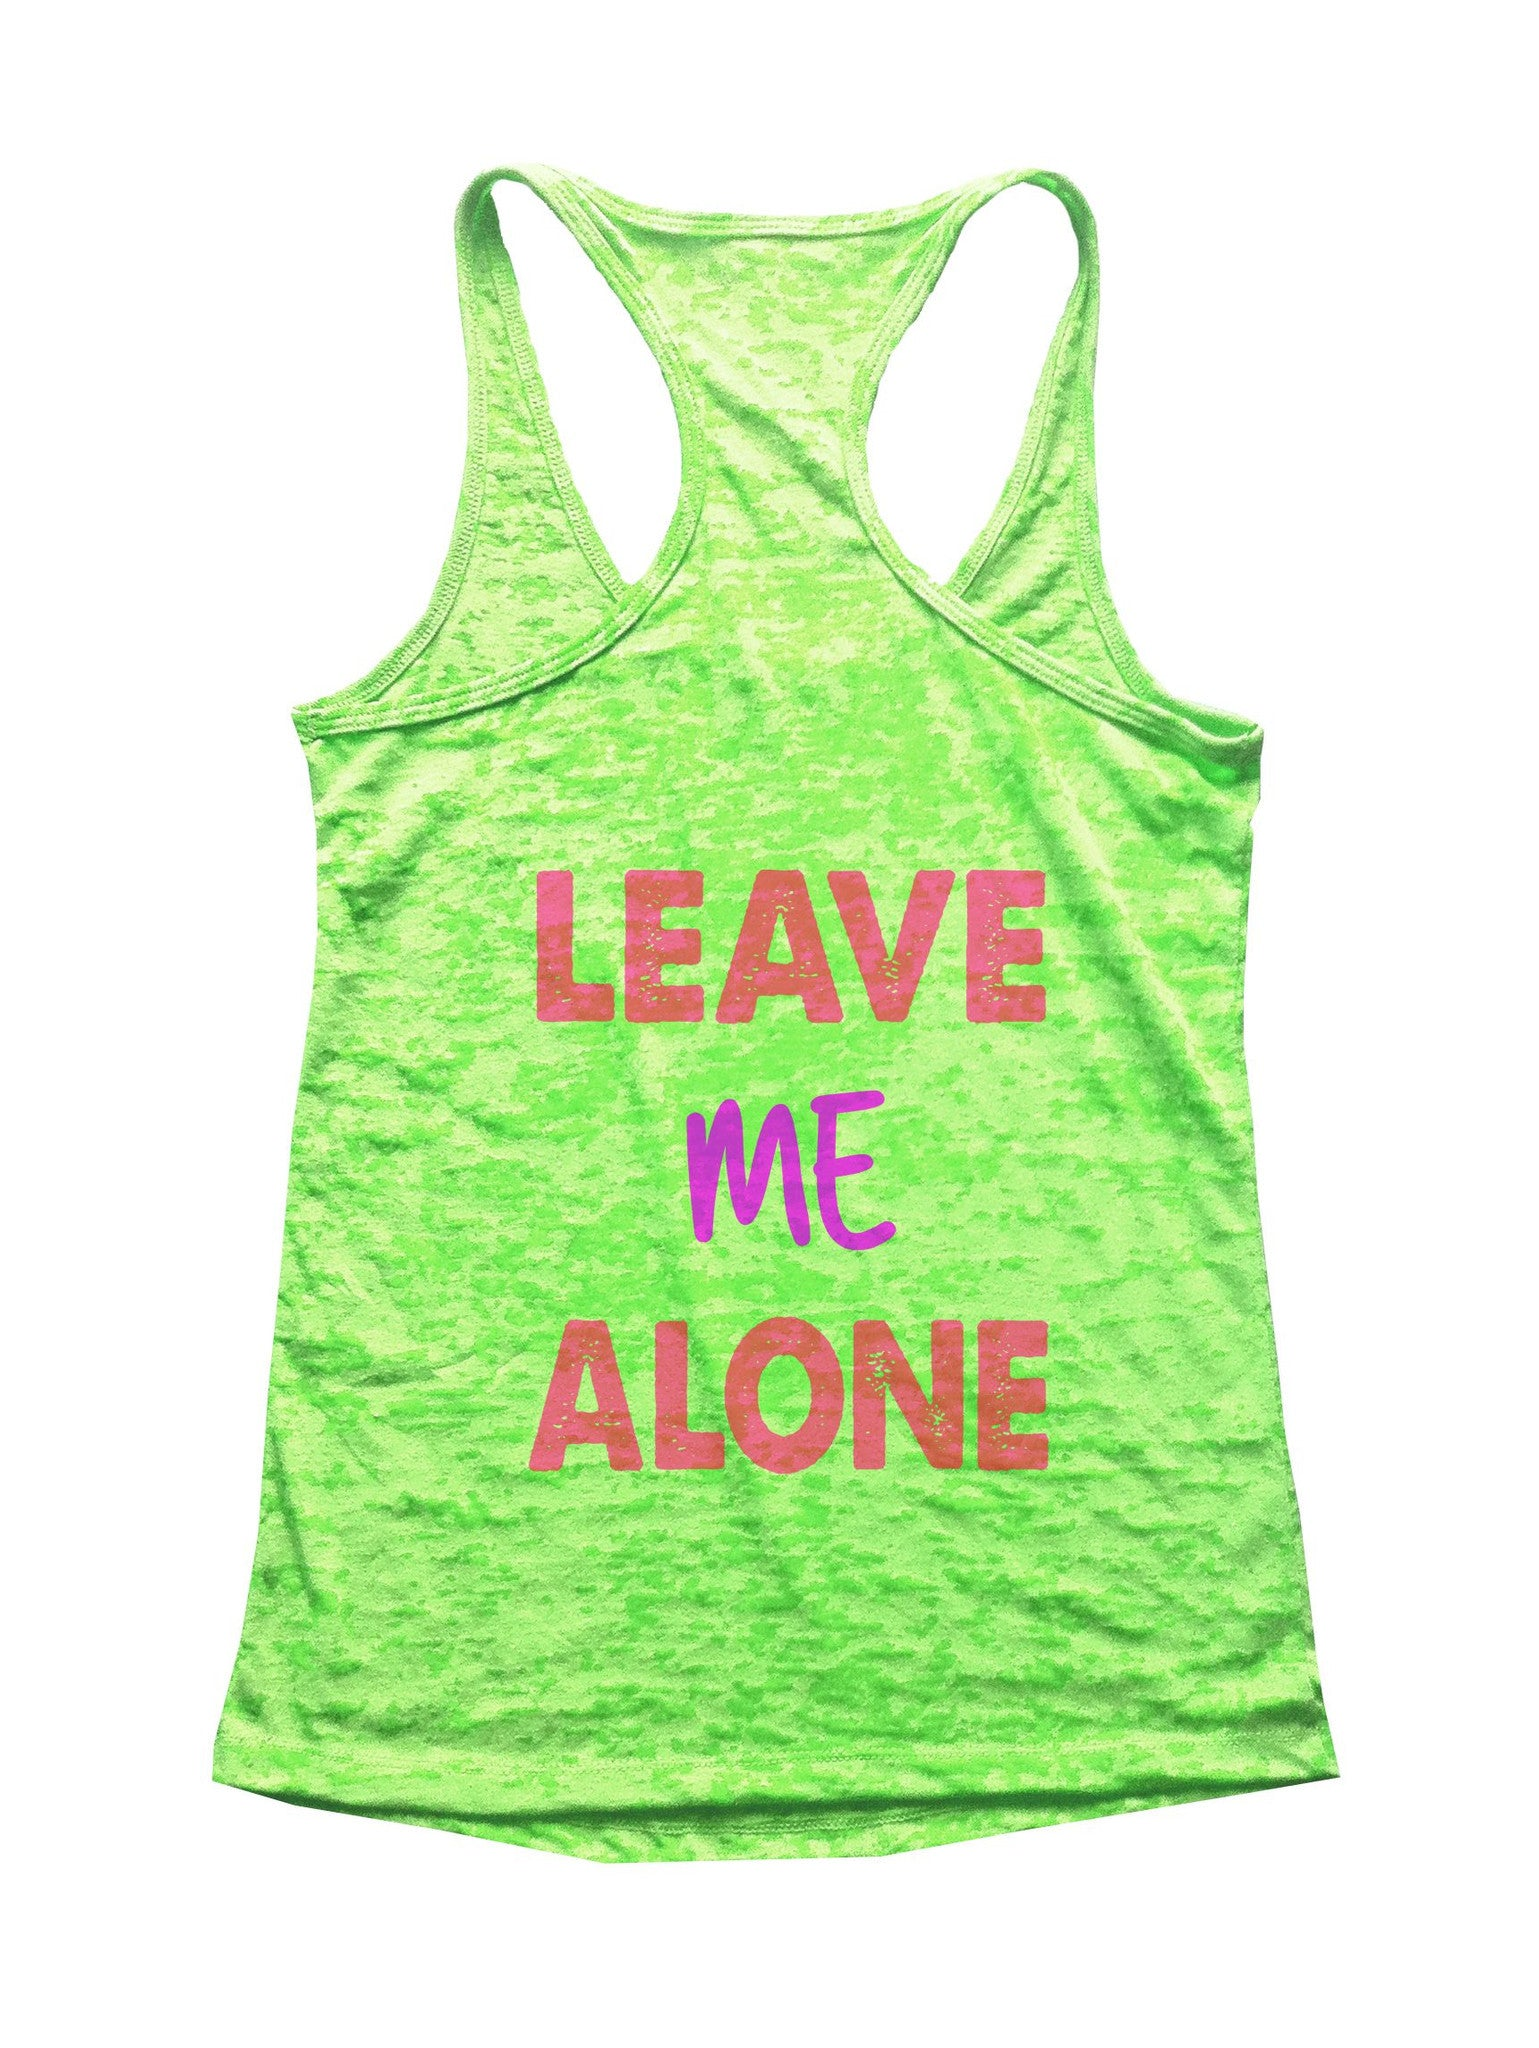 Leave Me Alone Burnout Tank Top By BurnoutTankTops.com - B24 - Funny Shirts Tank Tops Burnouts and Triblends  - 3